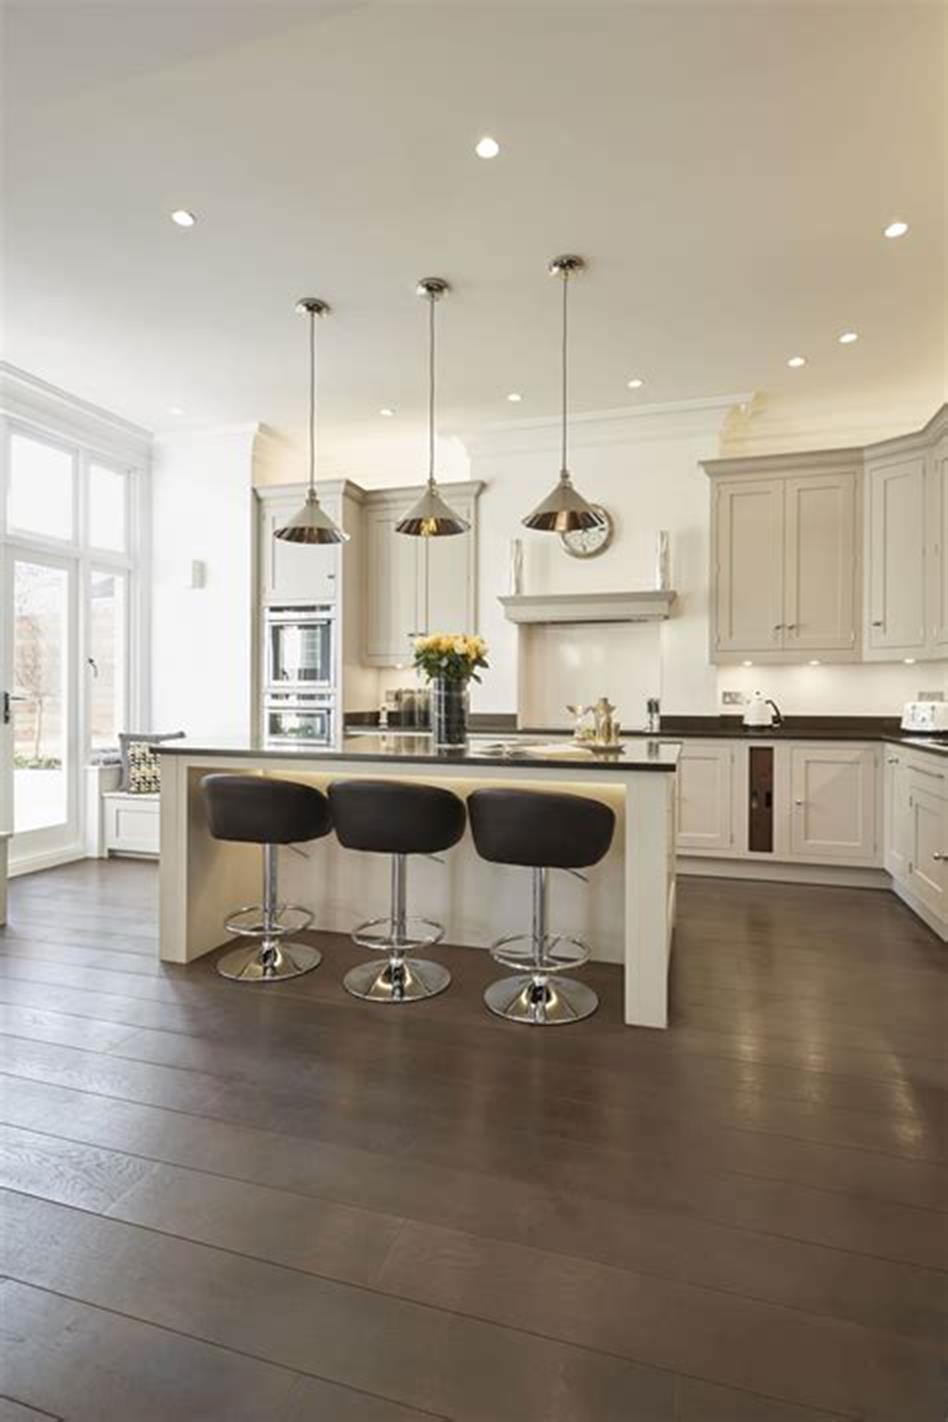 35 Stunning Contemporary Kitchen Design Ideas Youll Love 47